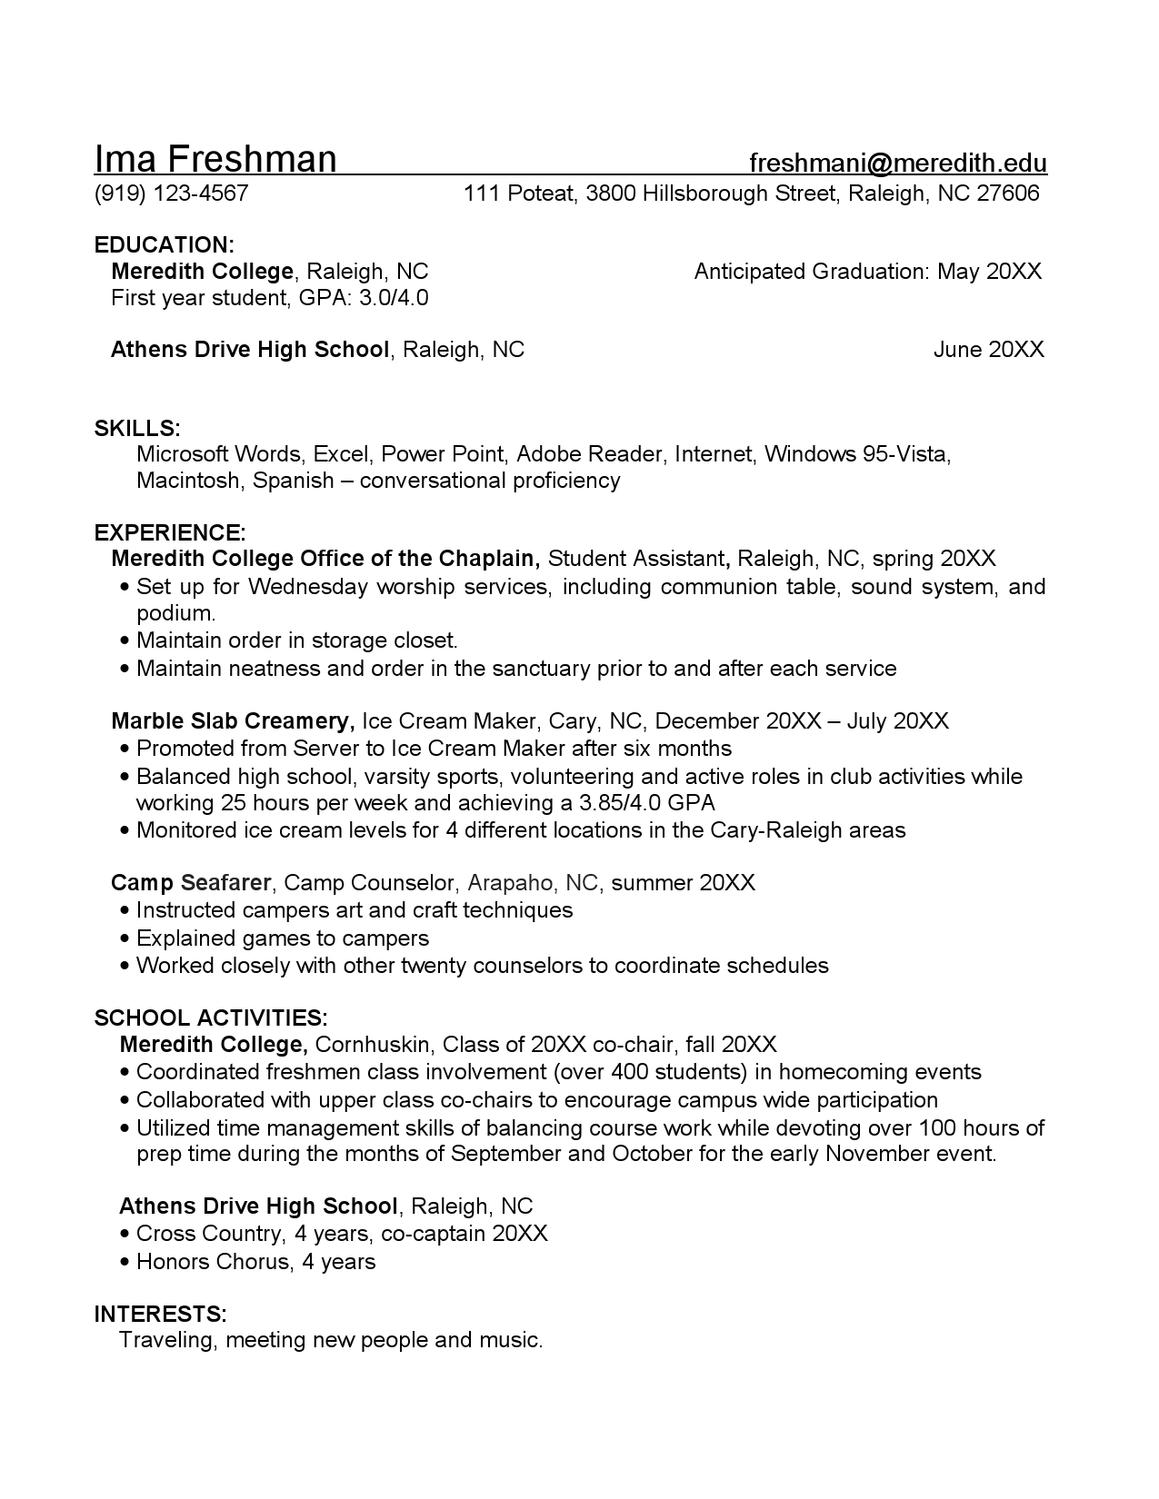 freshman resume sample by meredith college academic career planning issuu for first year Resume Resume For First Year Student